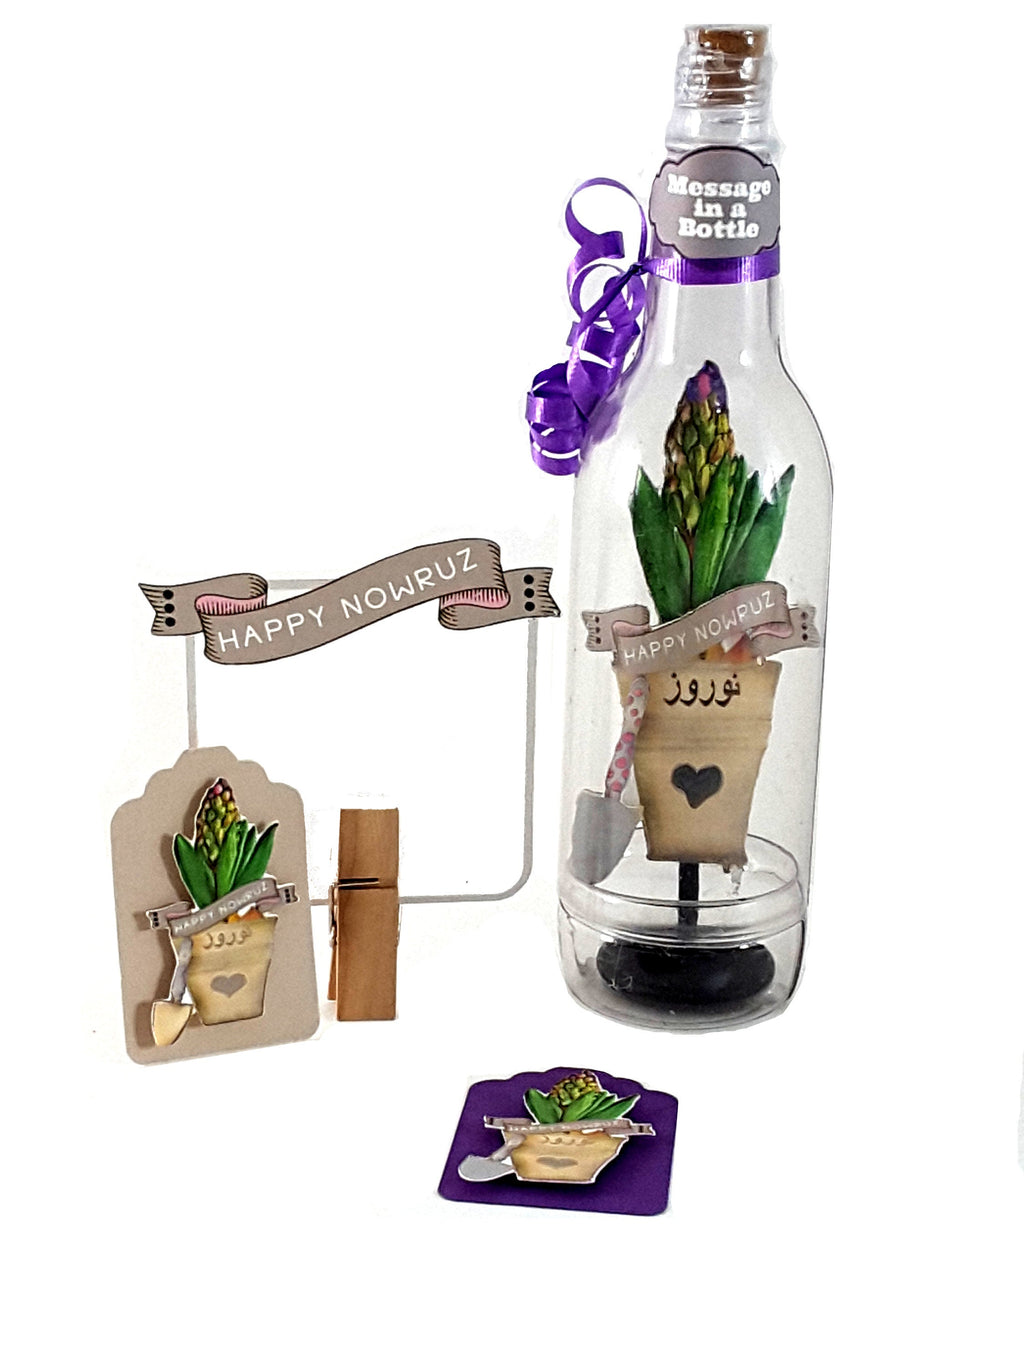 Persian New Year Nowruz Greeting Card Message in a Bottle with Potted Hyacinth Plant - The Last Word Bish